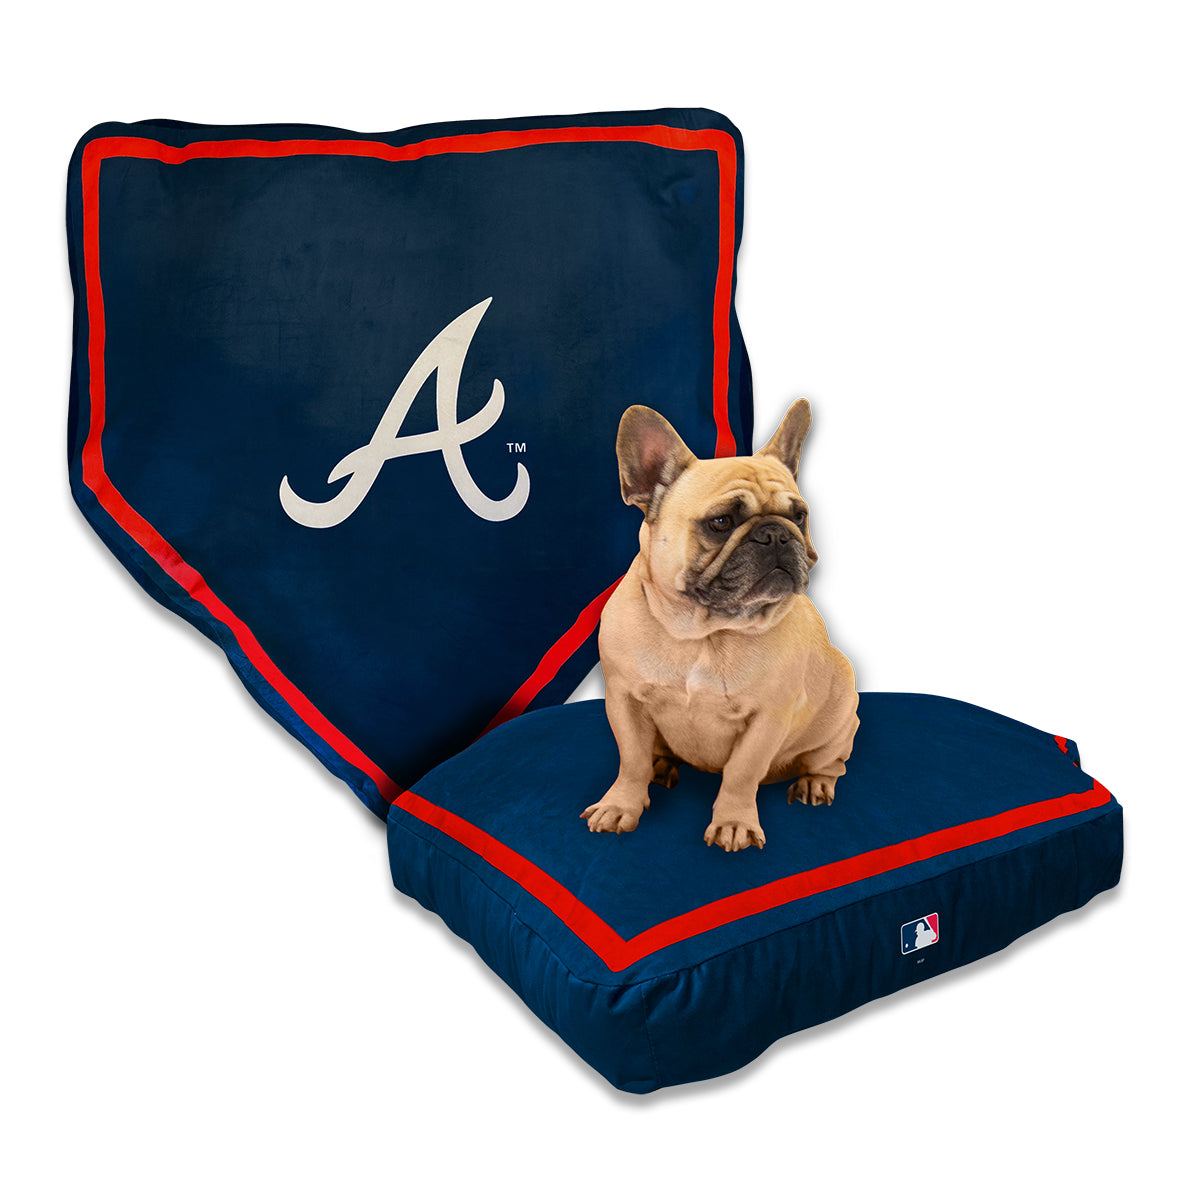 Atlanta Braves Home Plate Bed by Nap Cap